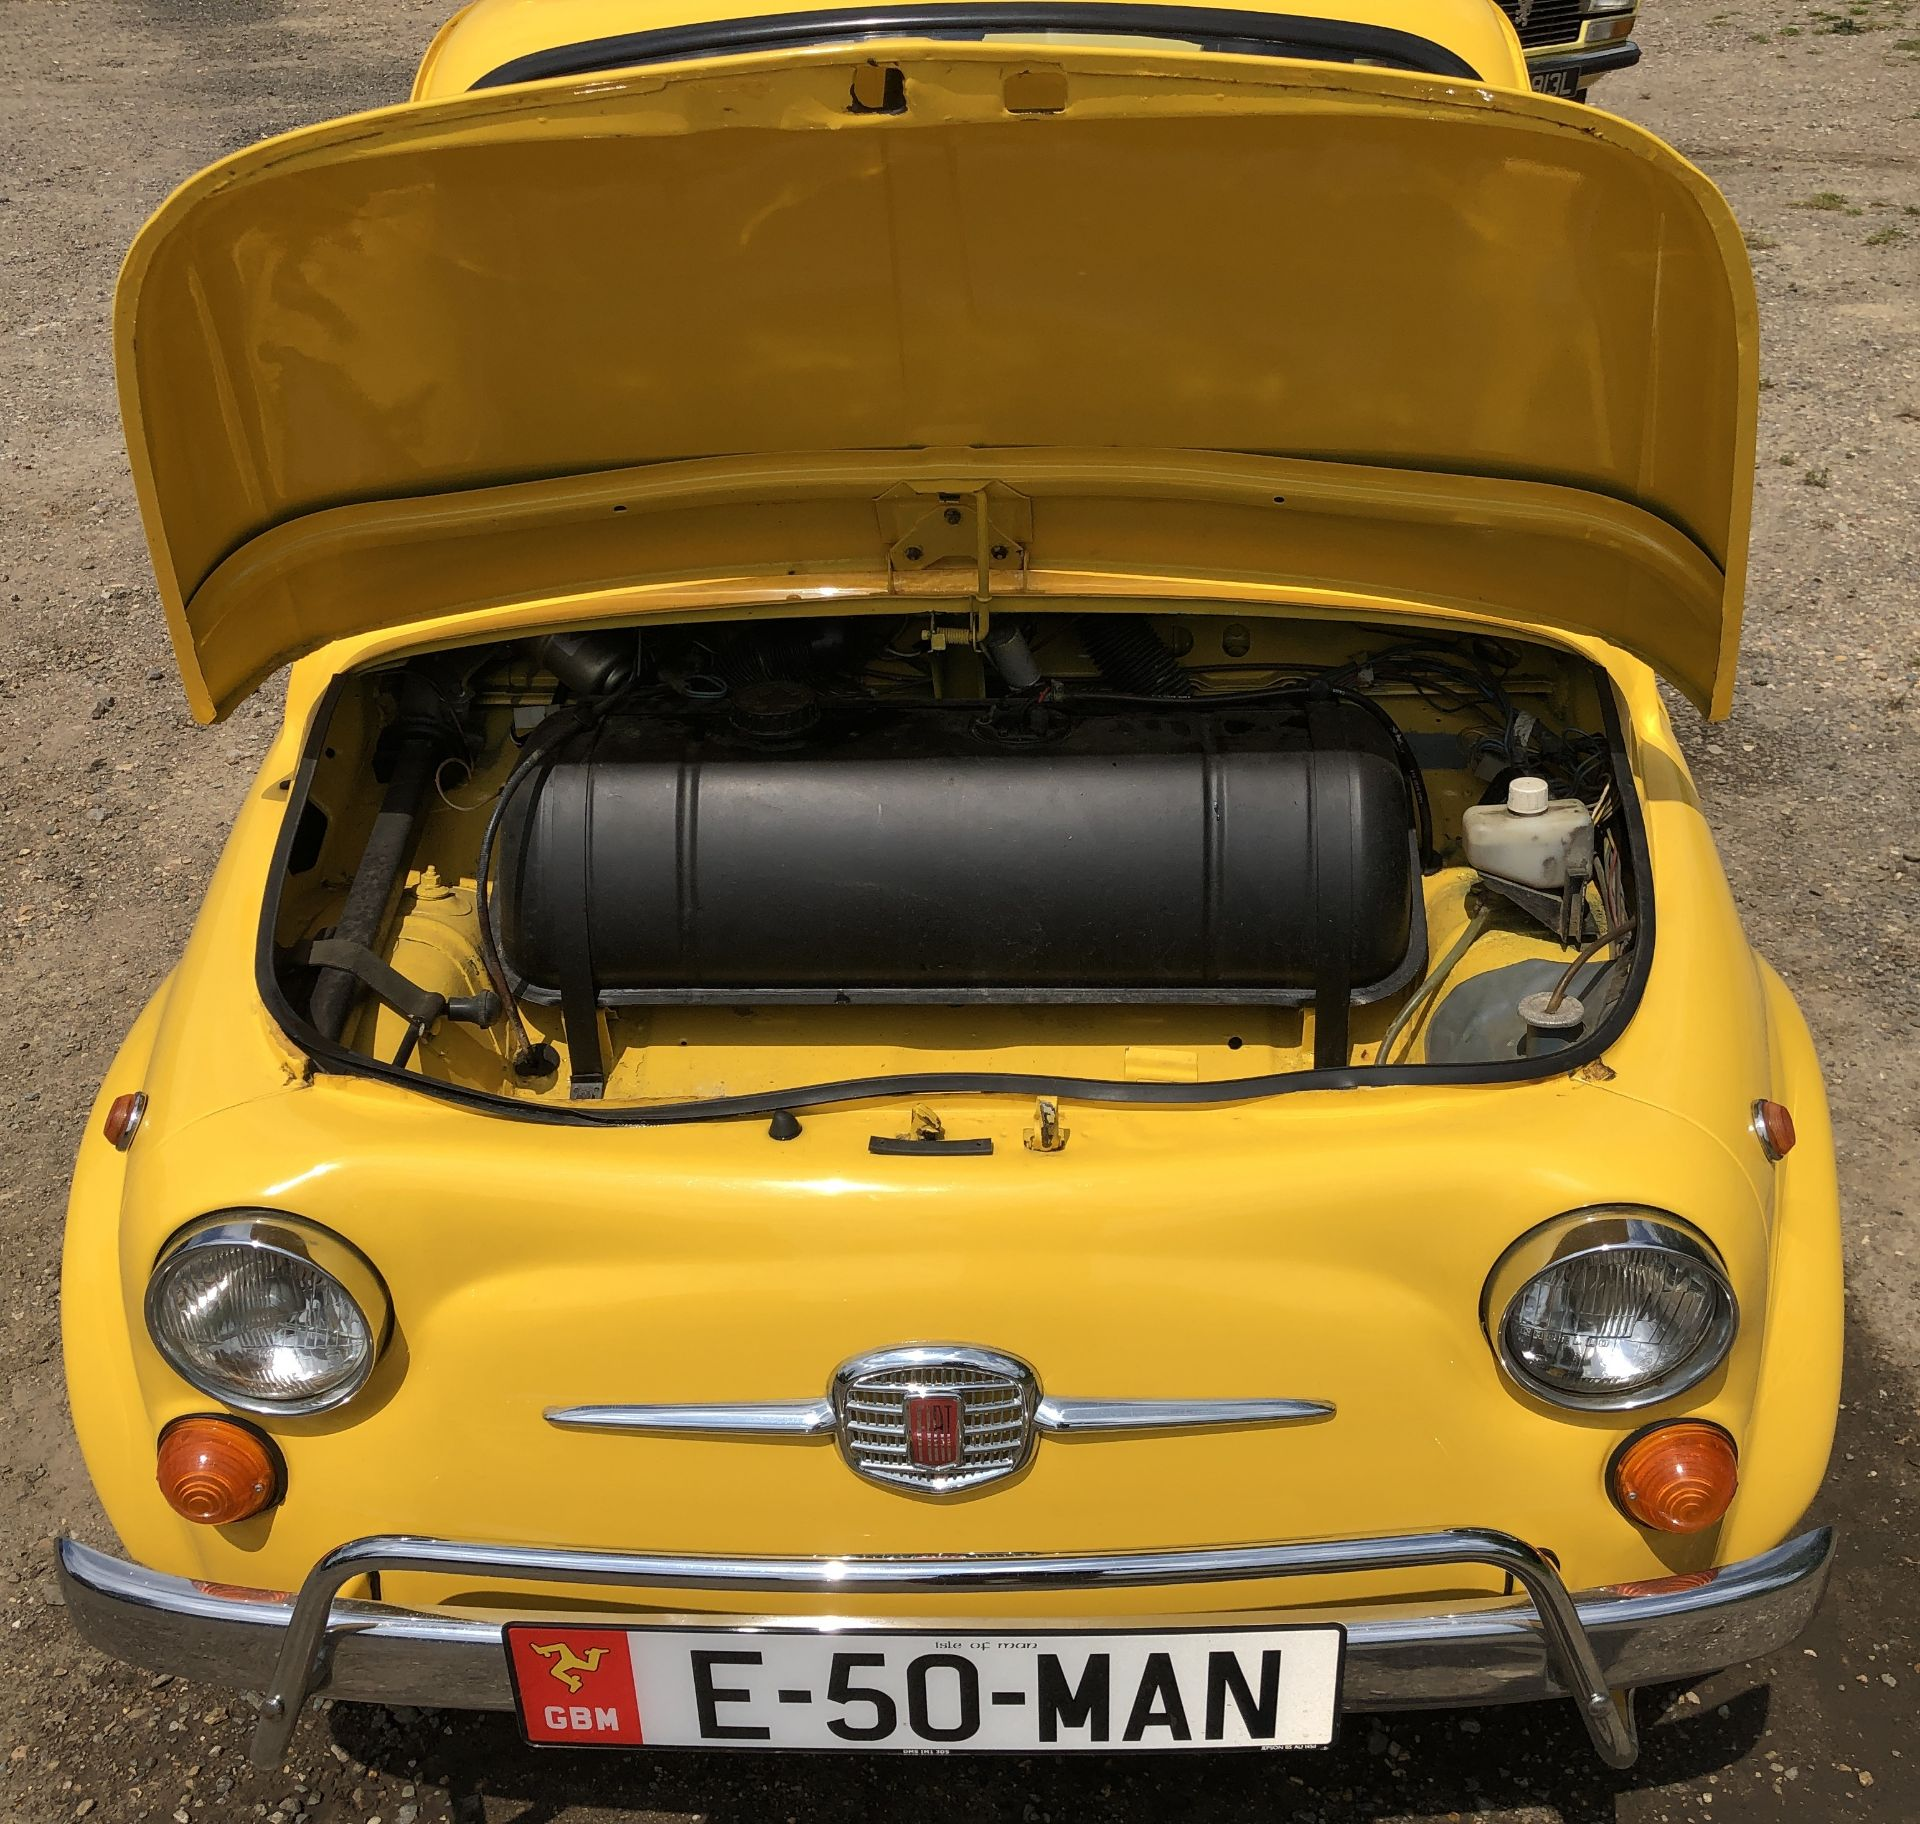 1972 Fiat 500 Saloon, Registration E-50-Man (IOM, Formally Registered as TGF 249L), First Registered - Image 30 of 34